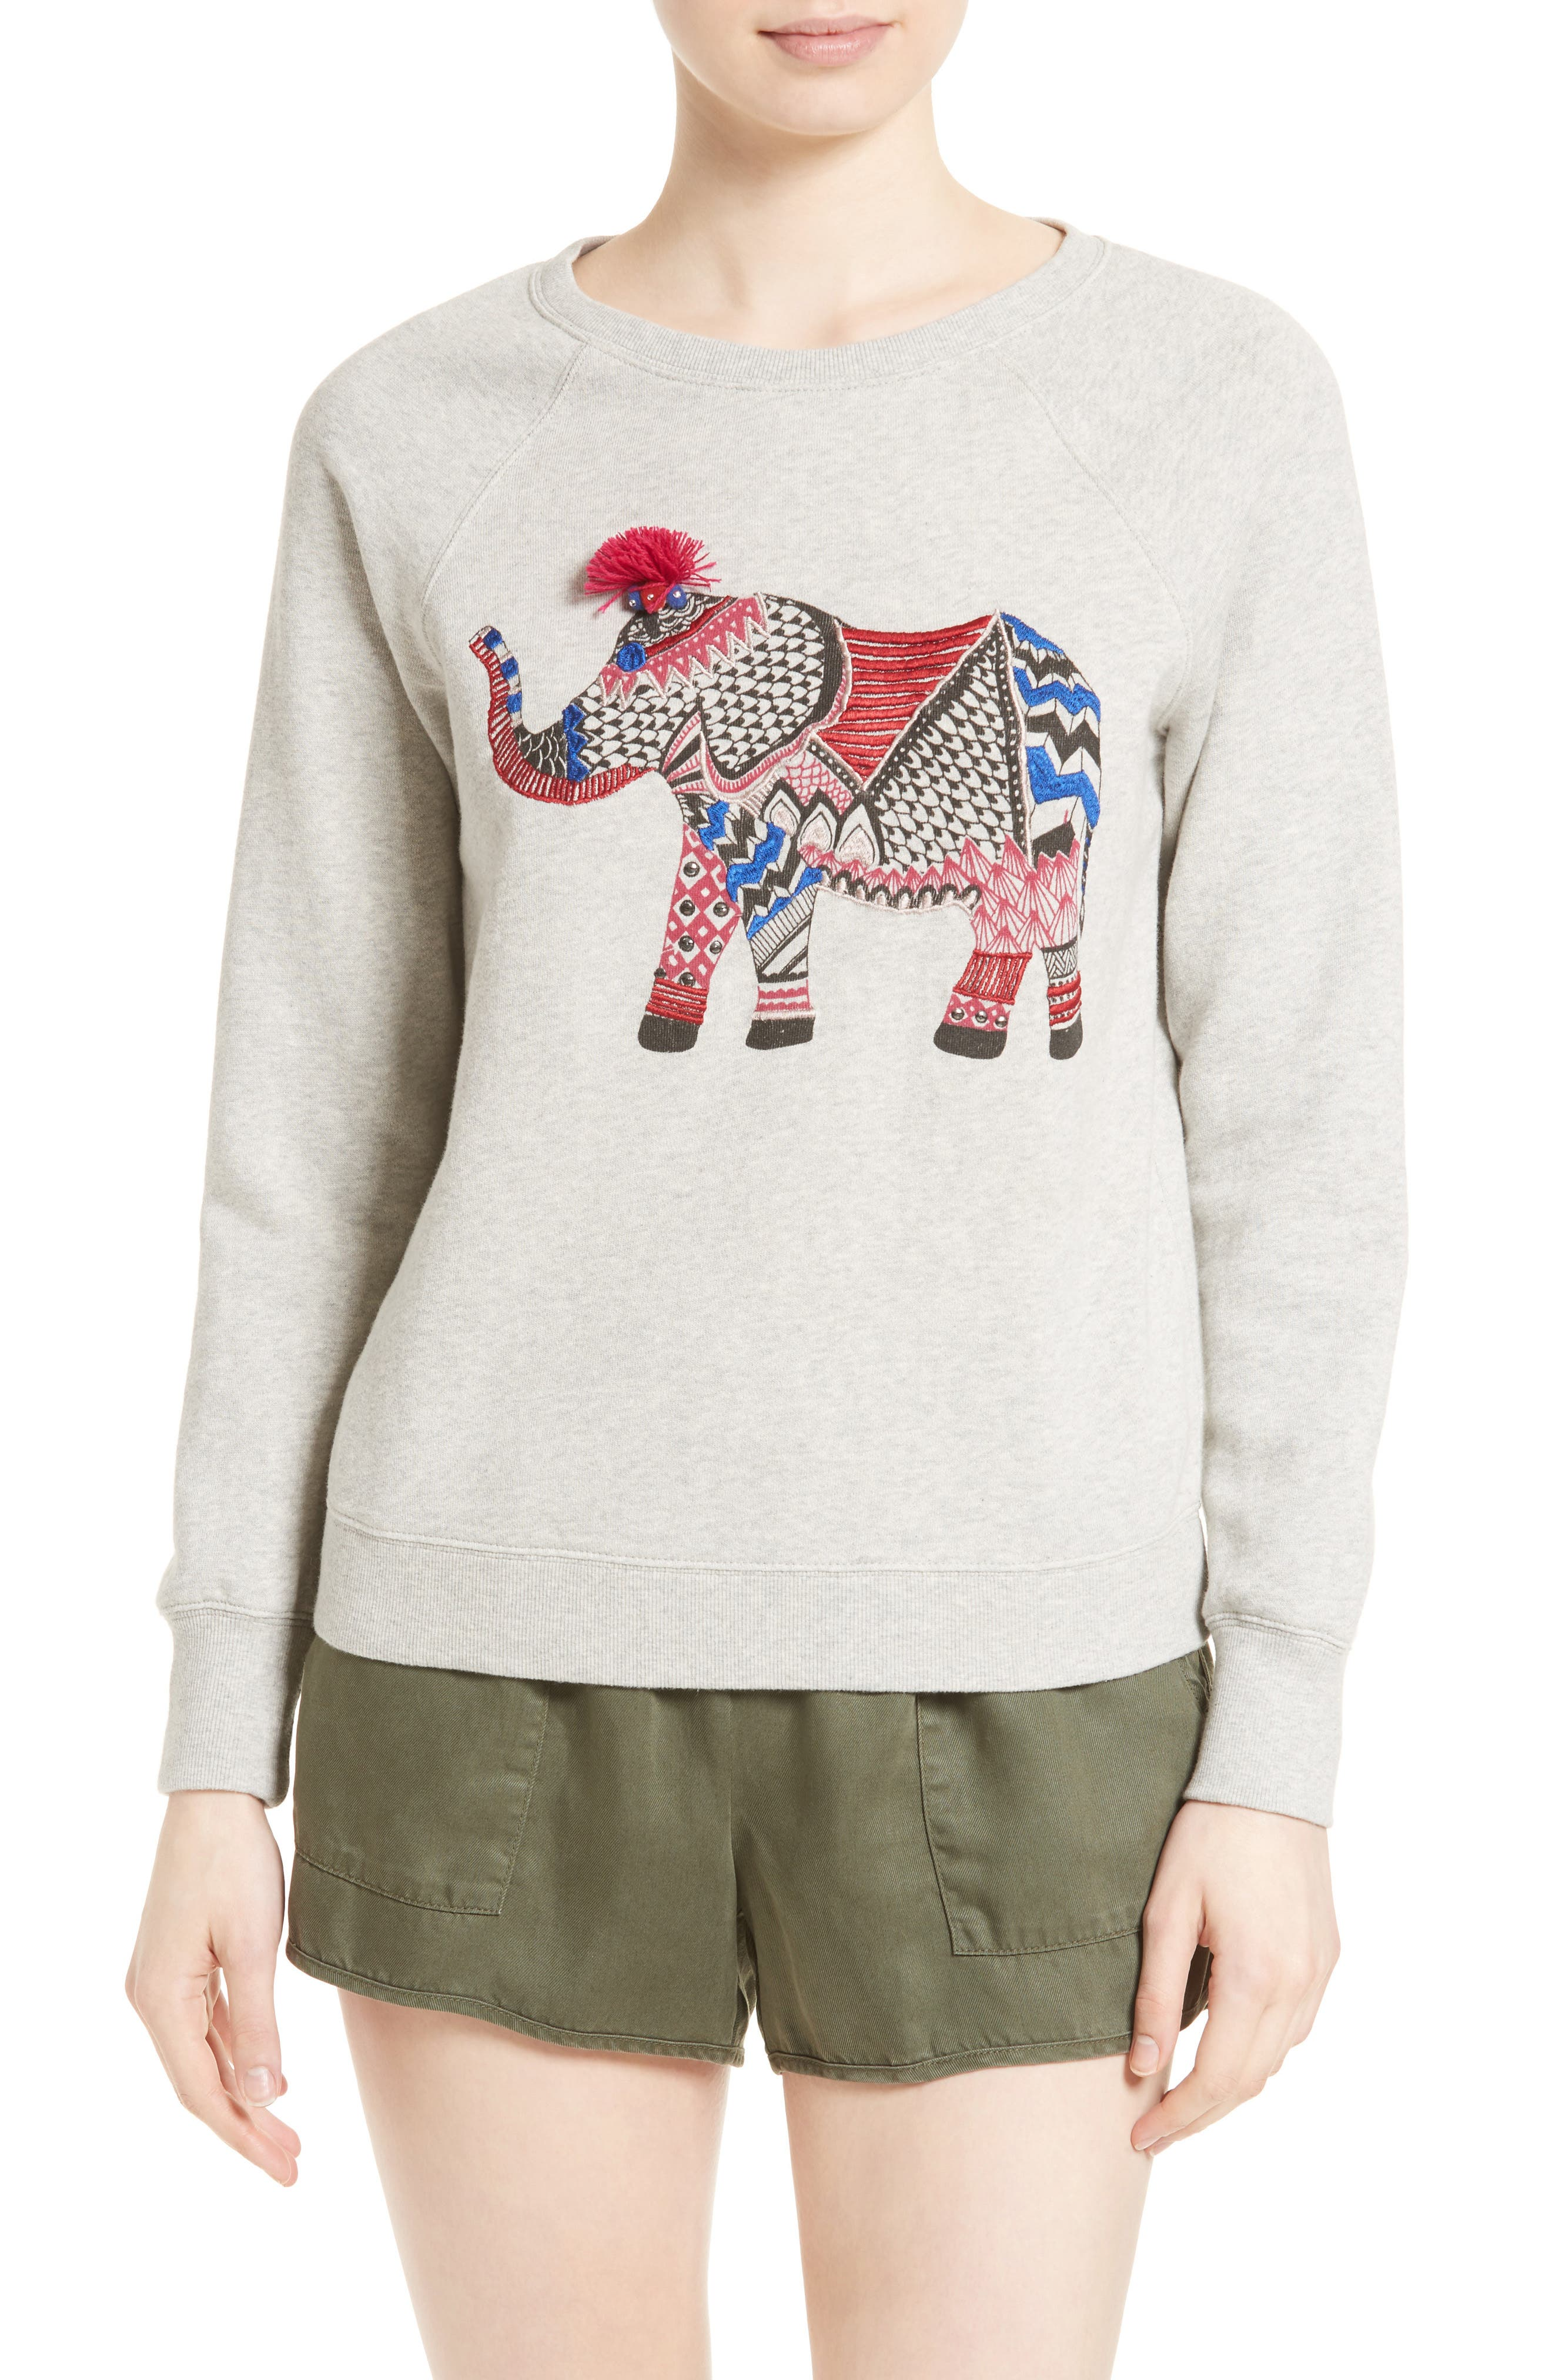 SOFT JOIE,                             Annora Embroidered Elephant Sweatshirt,                             Main thumbnail 1, color,                             099